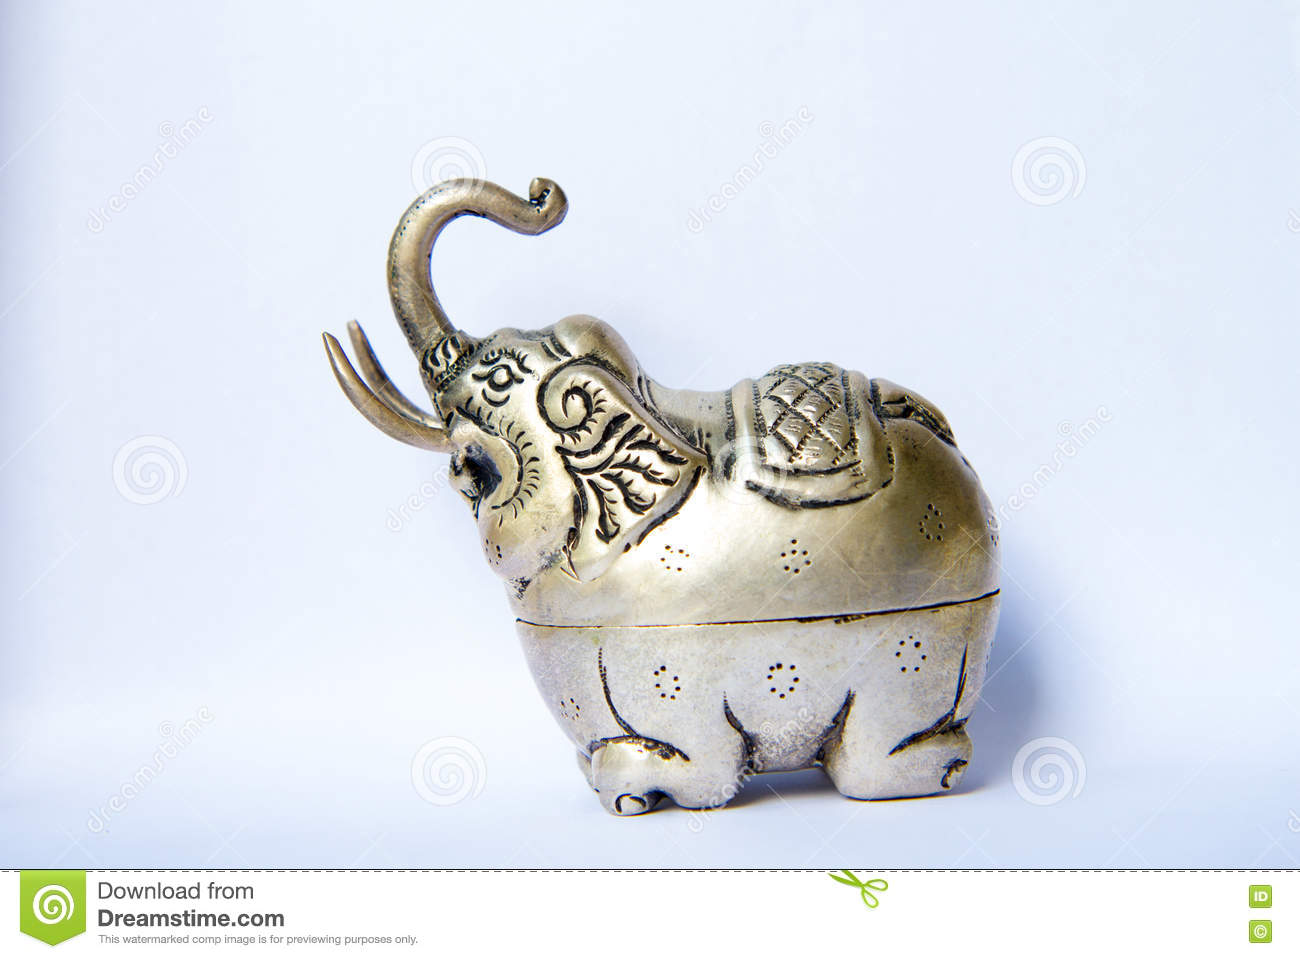 Khmer Silver Elephant Shaped Box The Elephant Raised Trunksymbol